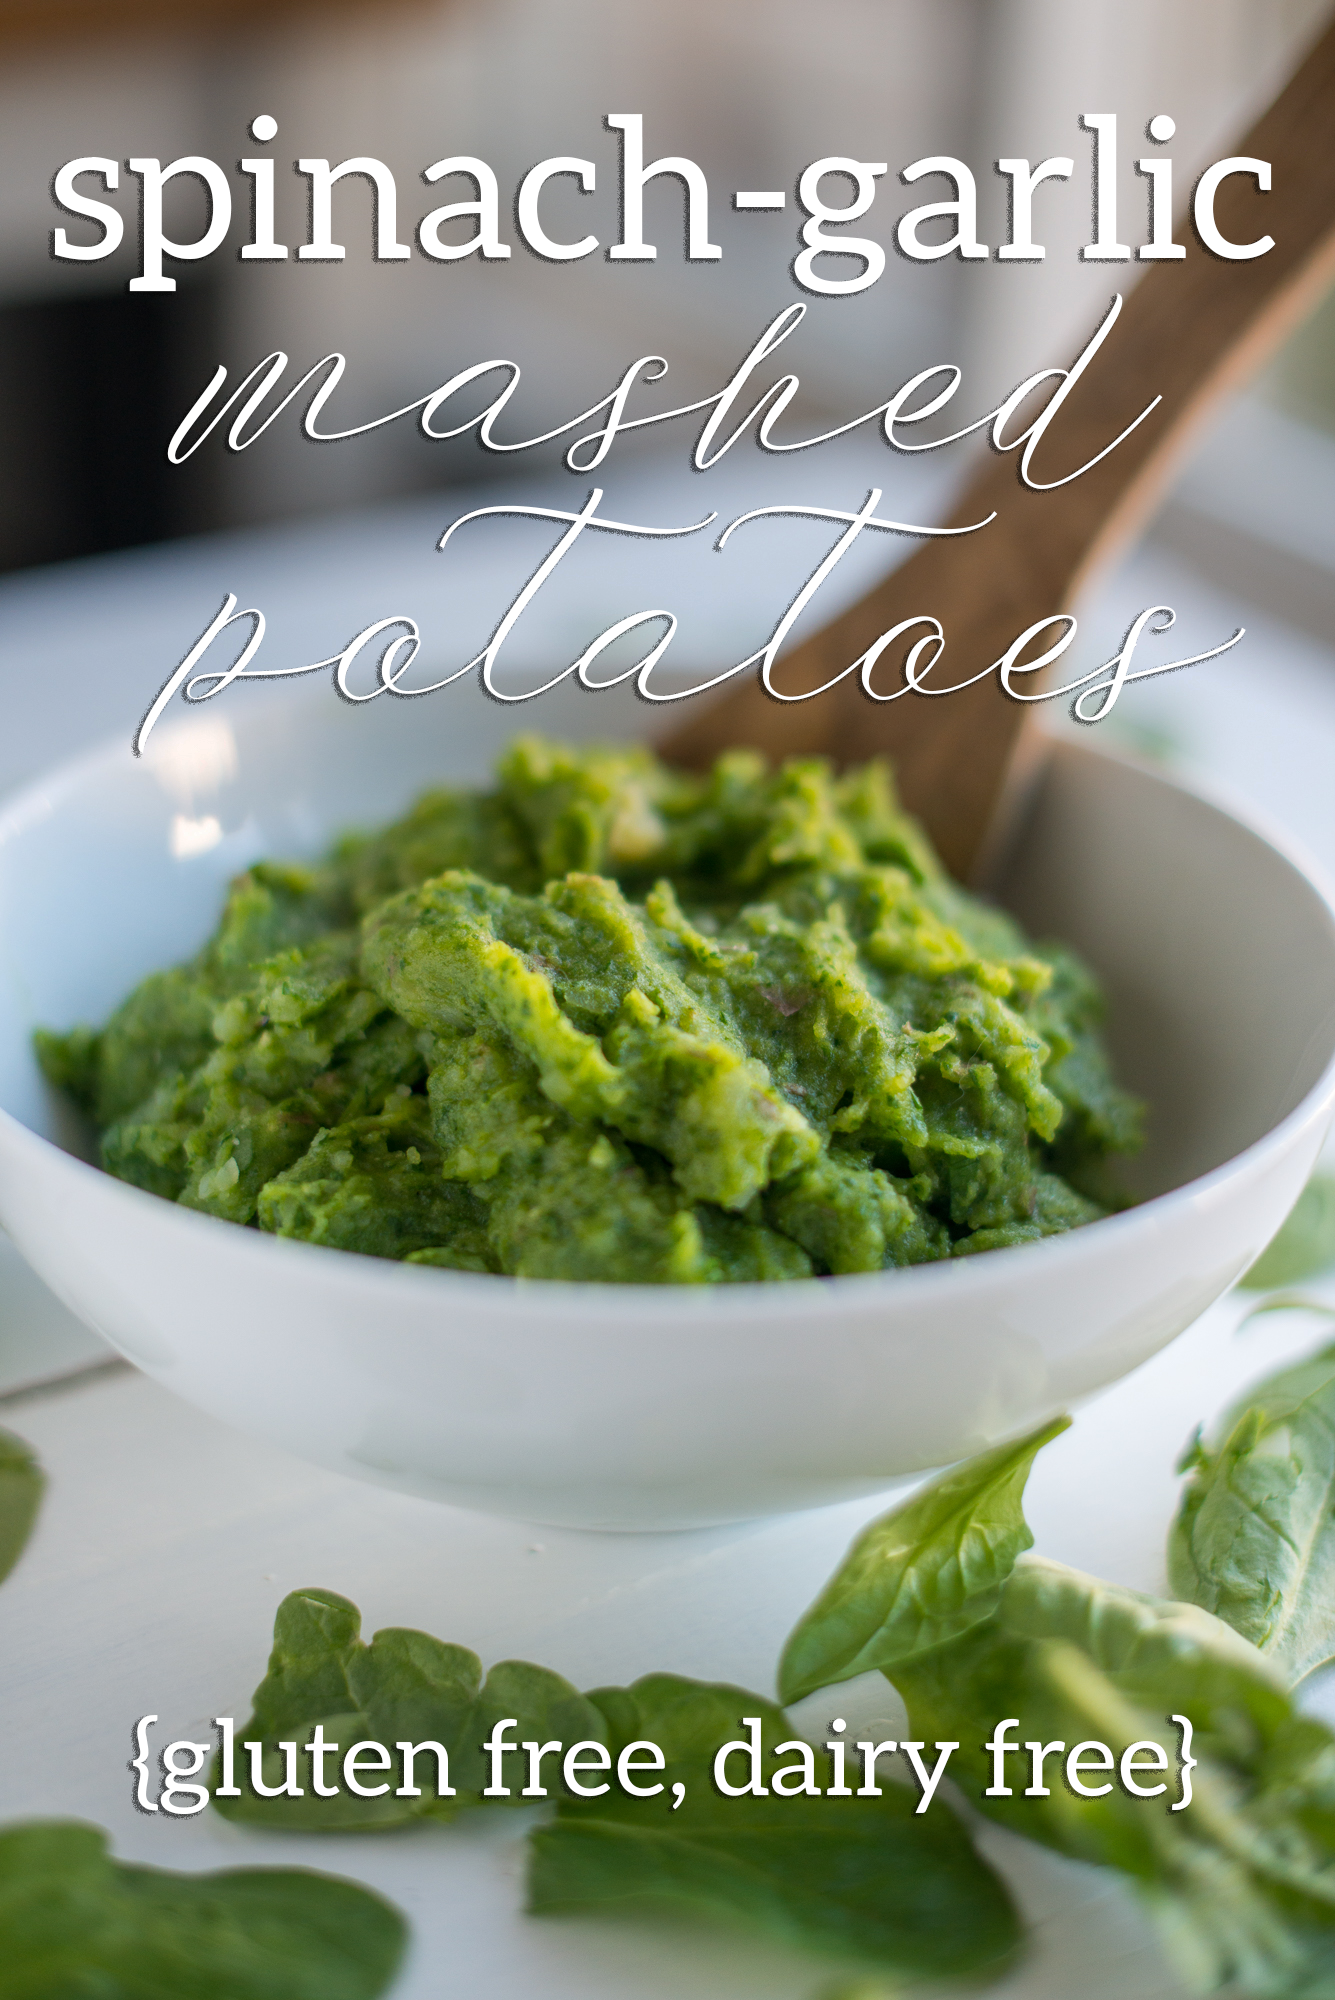 spinach garlic mashed potatoes (gluten free, dairy free)